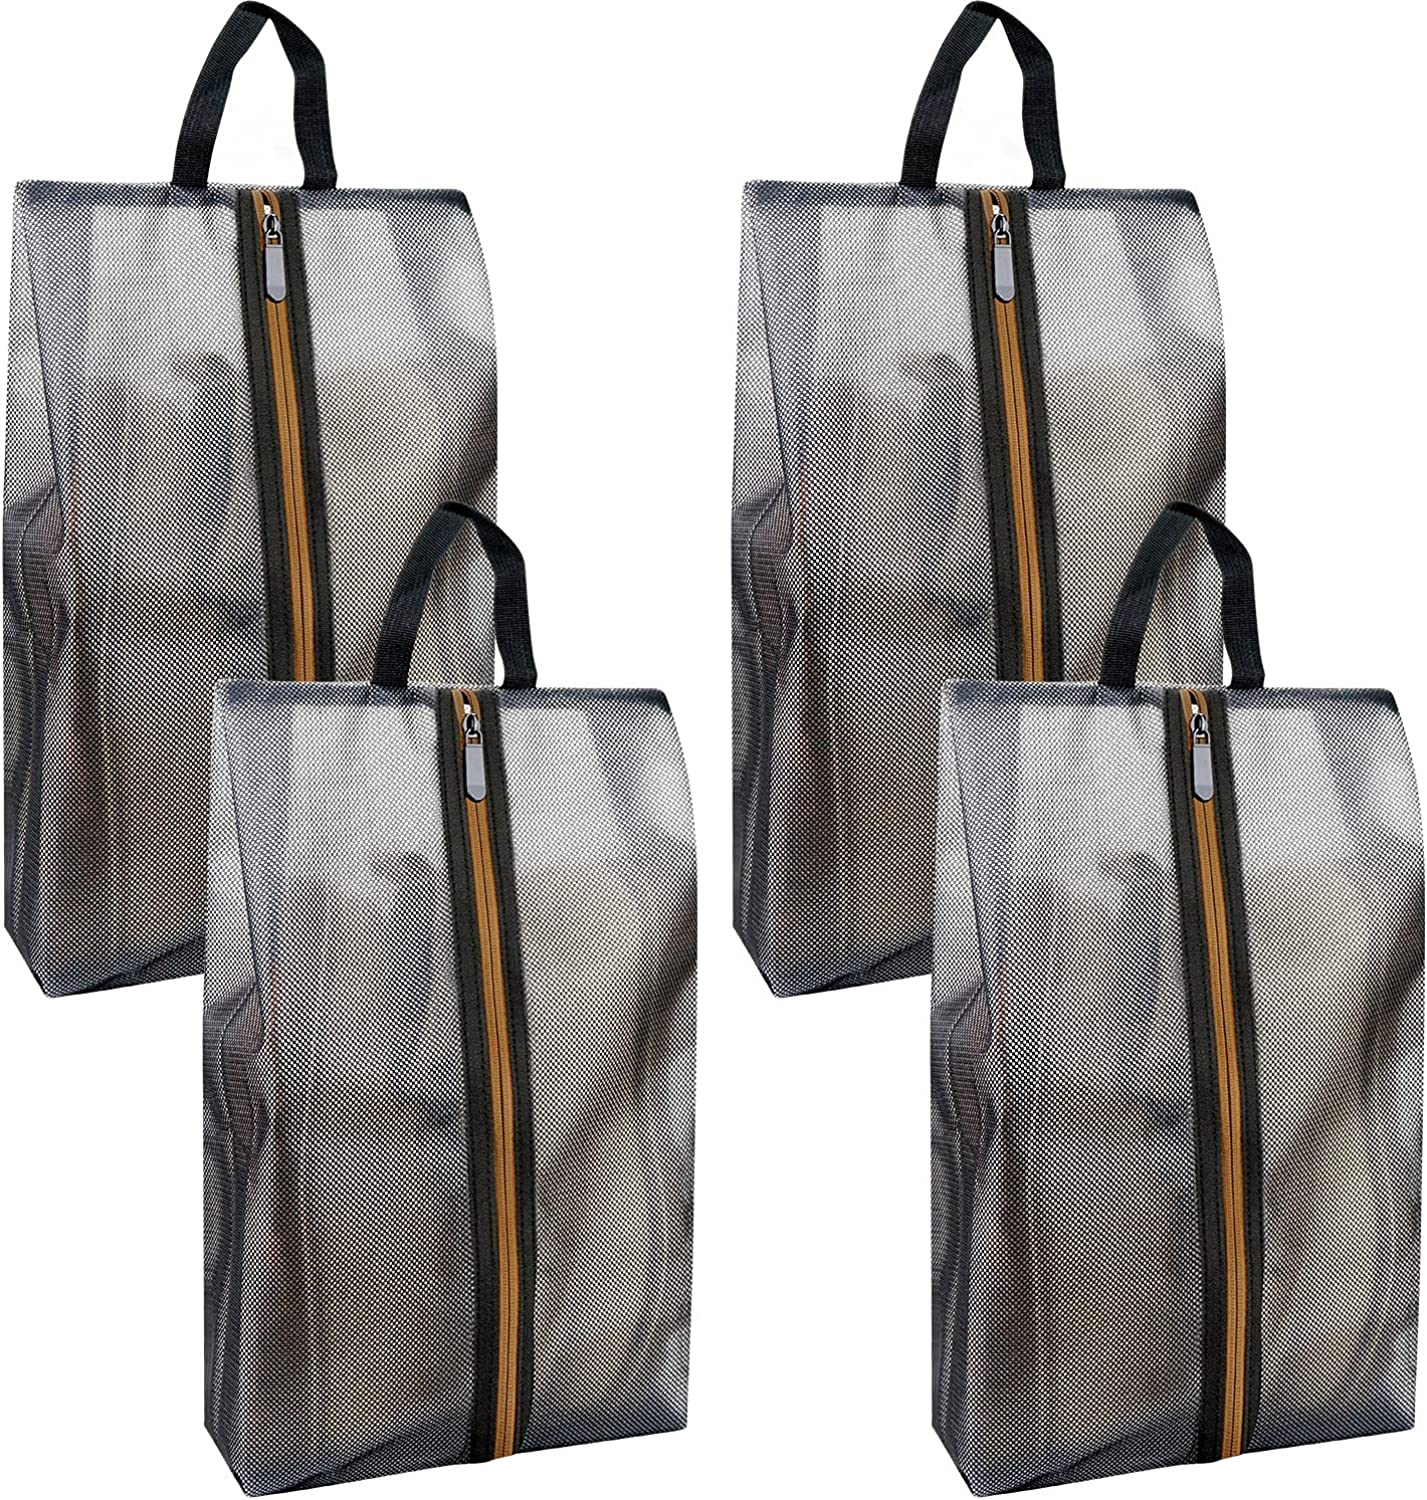 Shoe Max 60% OFF Bags for Travel Al sold out. - Pouches Large Sto Visible Waterproof